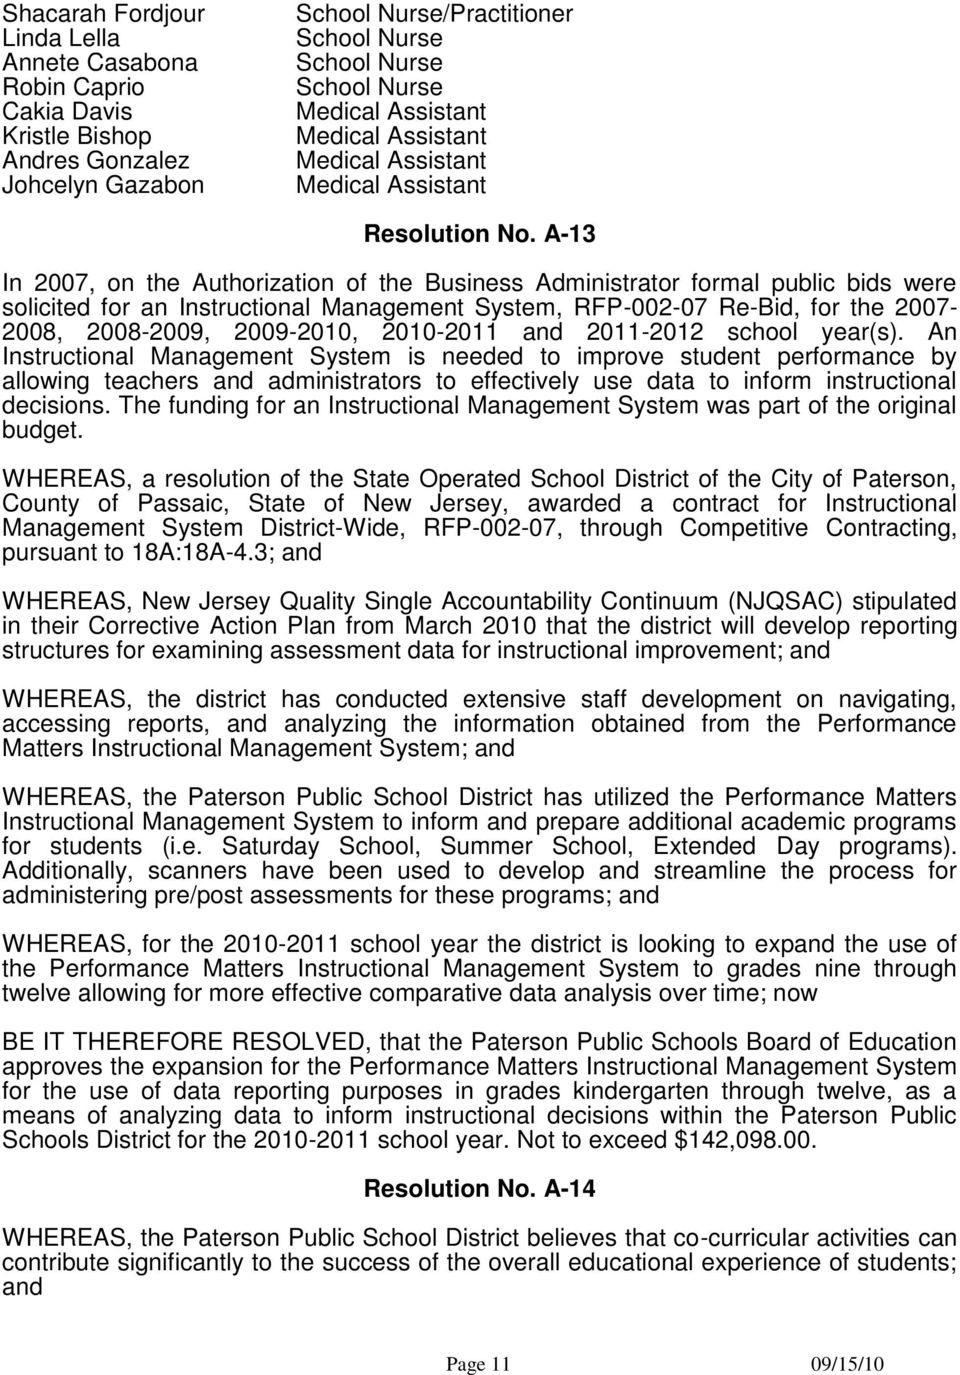 A-13 In 2007, on the Authorization of the Business Administrator formal public bids were solicited for an Instructional Management System, RFP-002-07 Re-Bid, for the 2007-2008, 2008-2009, 2009-2010,